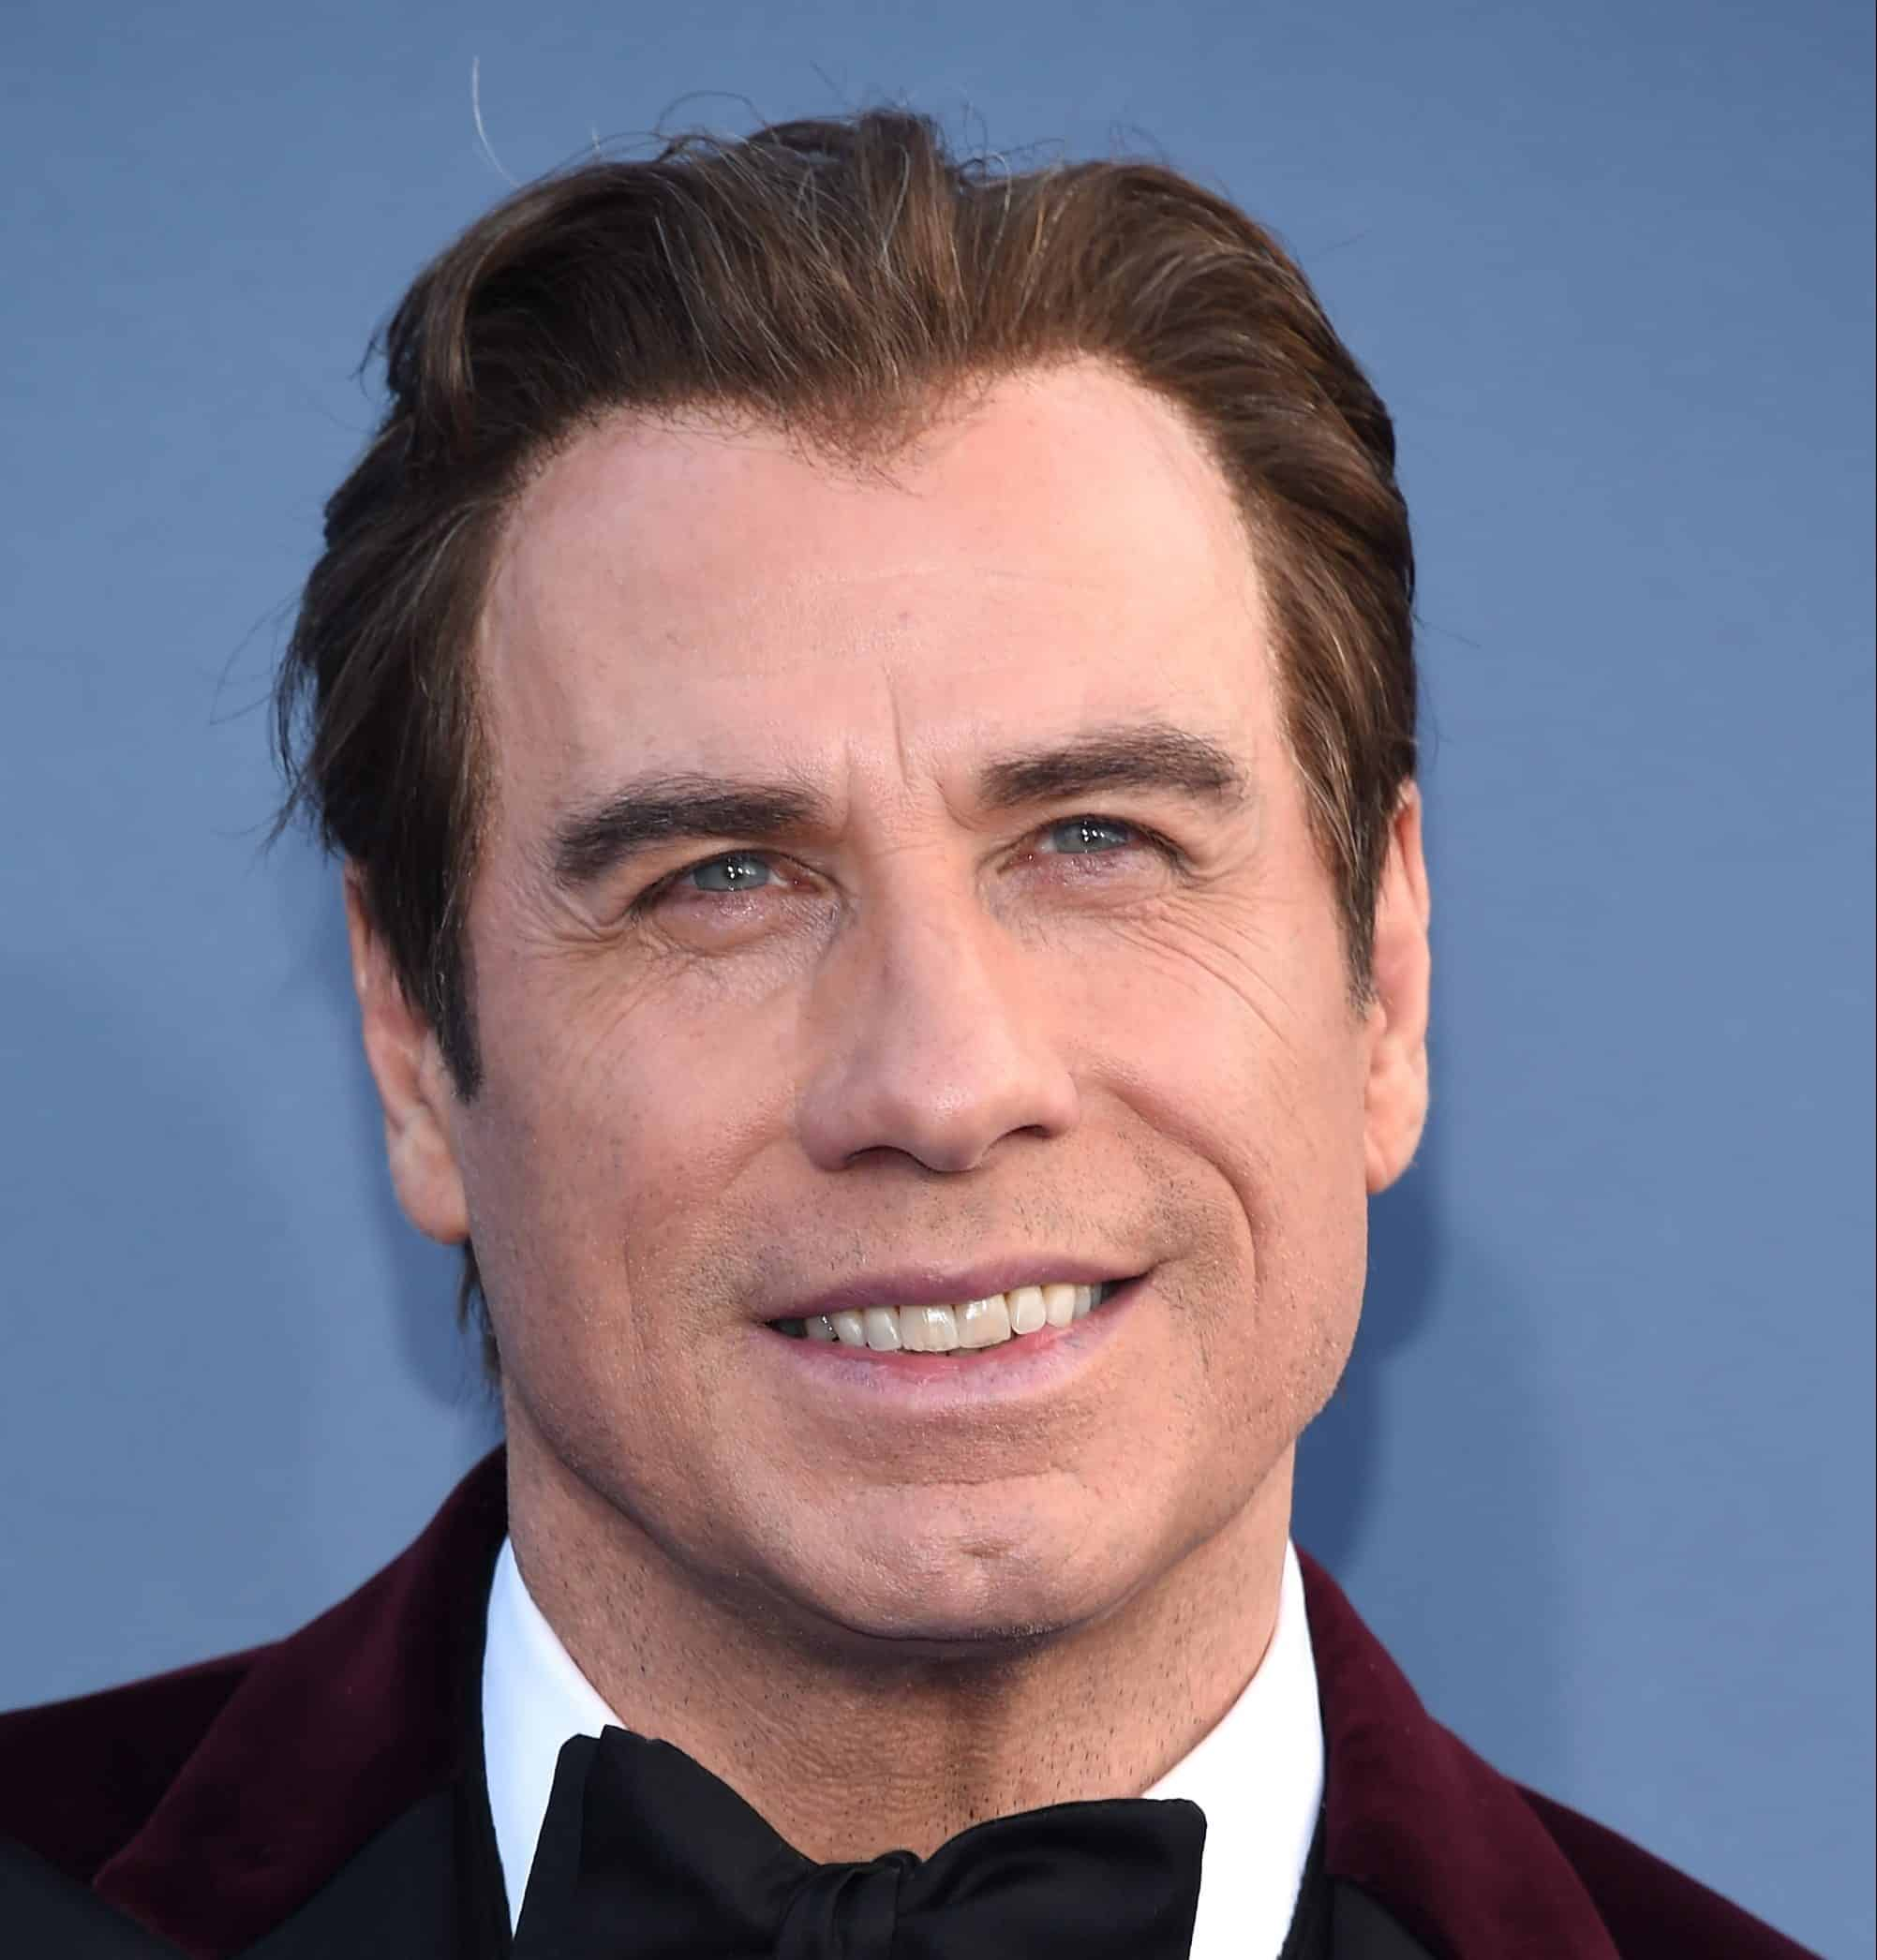 Travolta wearing a toupee with sing of it showing at the hairline